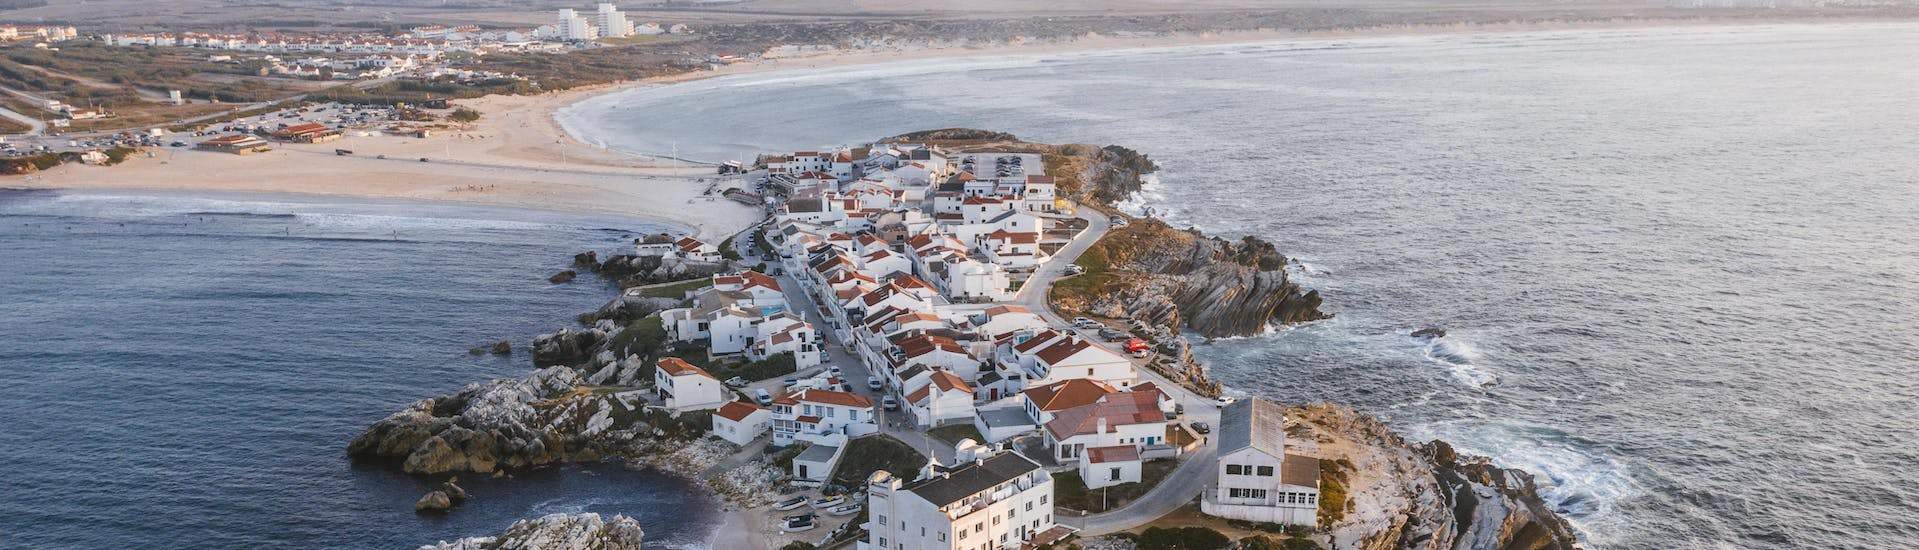 An areal view of the rocky peninsula that can be seen by visitors who go surfing in Peniche.